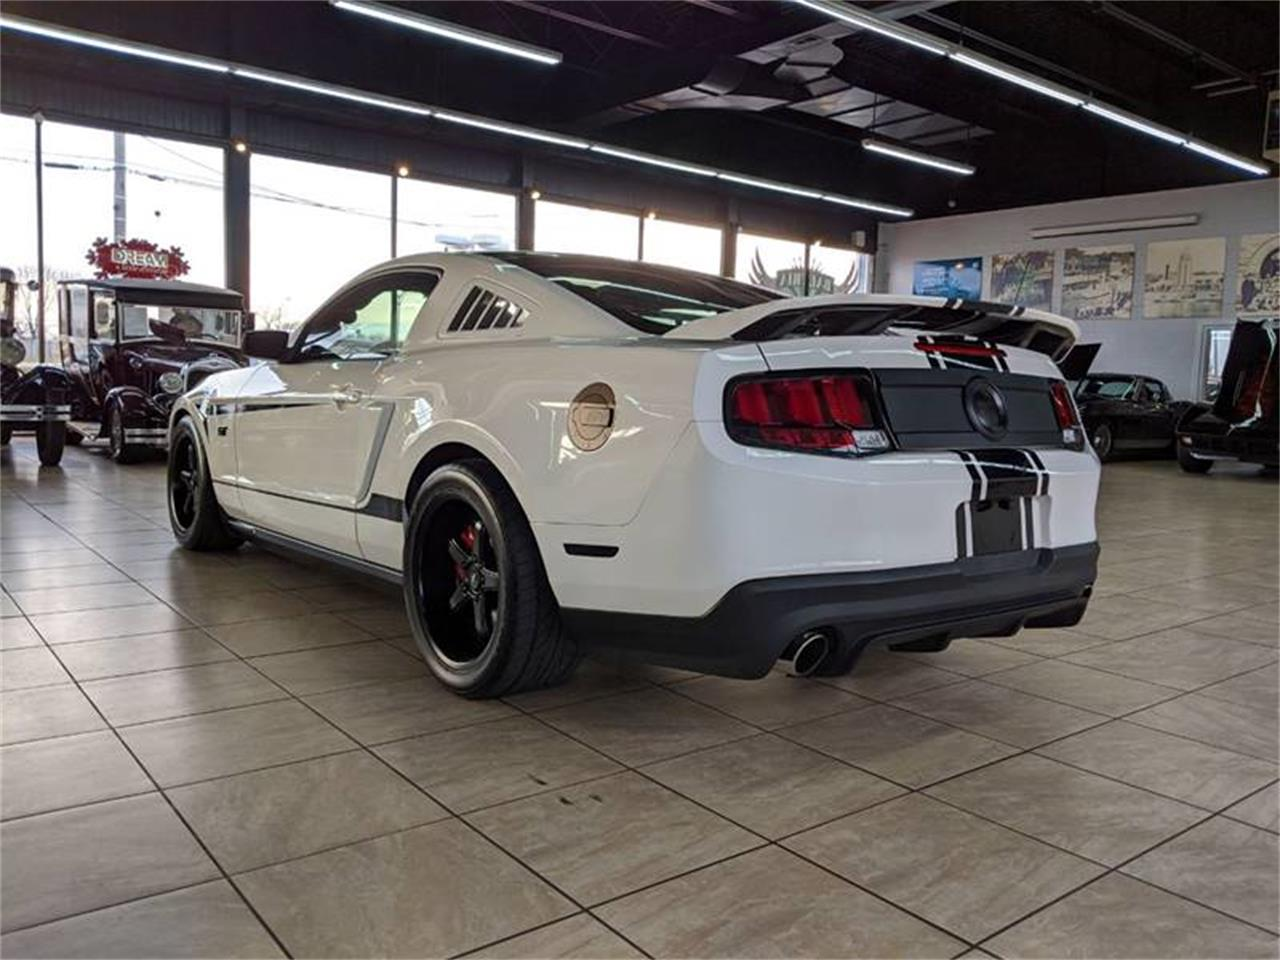 2010 Ford Mustang (CC-1304141) for sale in St. Charles, Illinois